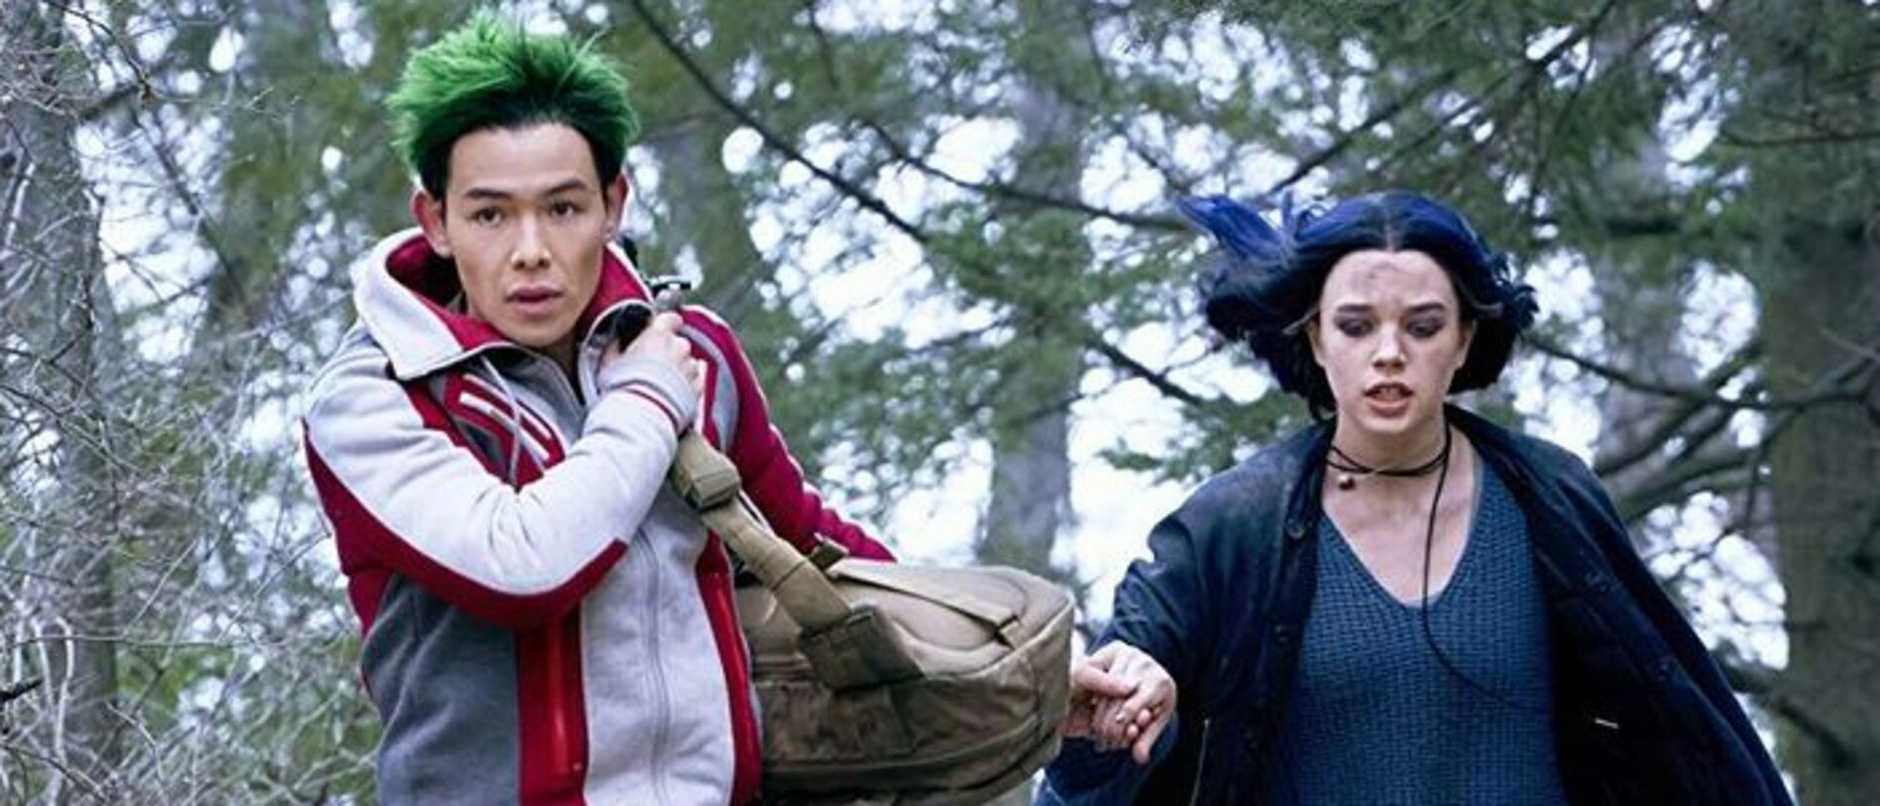 Actors Ryan Potter and Teagan Croft in a scene from Titans.